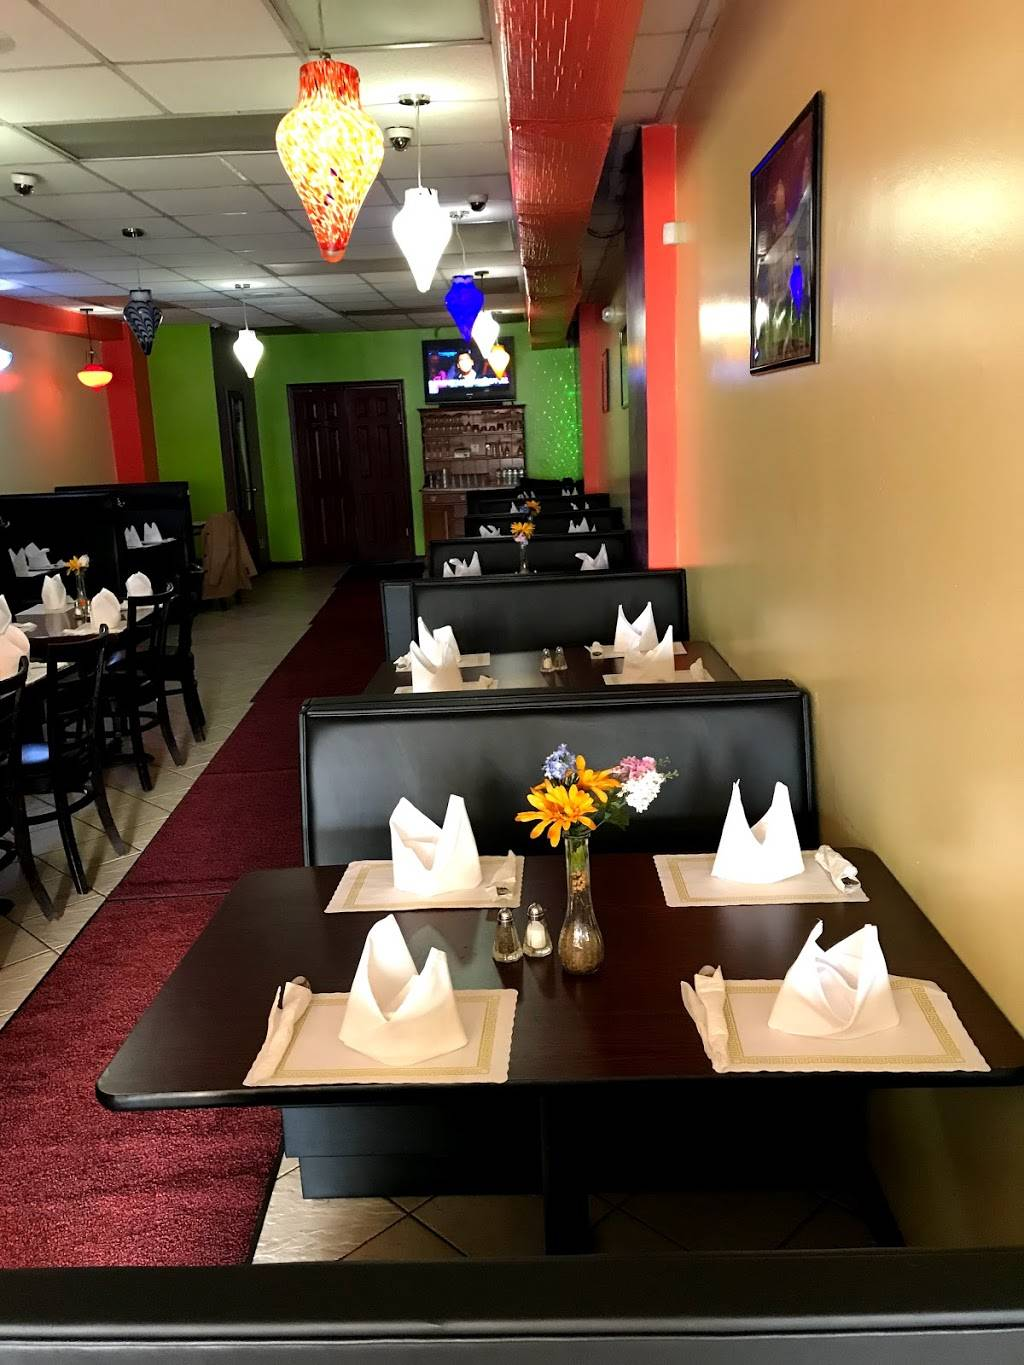 Chef Of India | meal delivery | 324 Central Ave, Jersey City, NJ 07307, USA | 2018395055 OR +1 201-839-5055